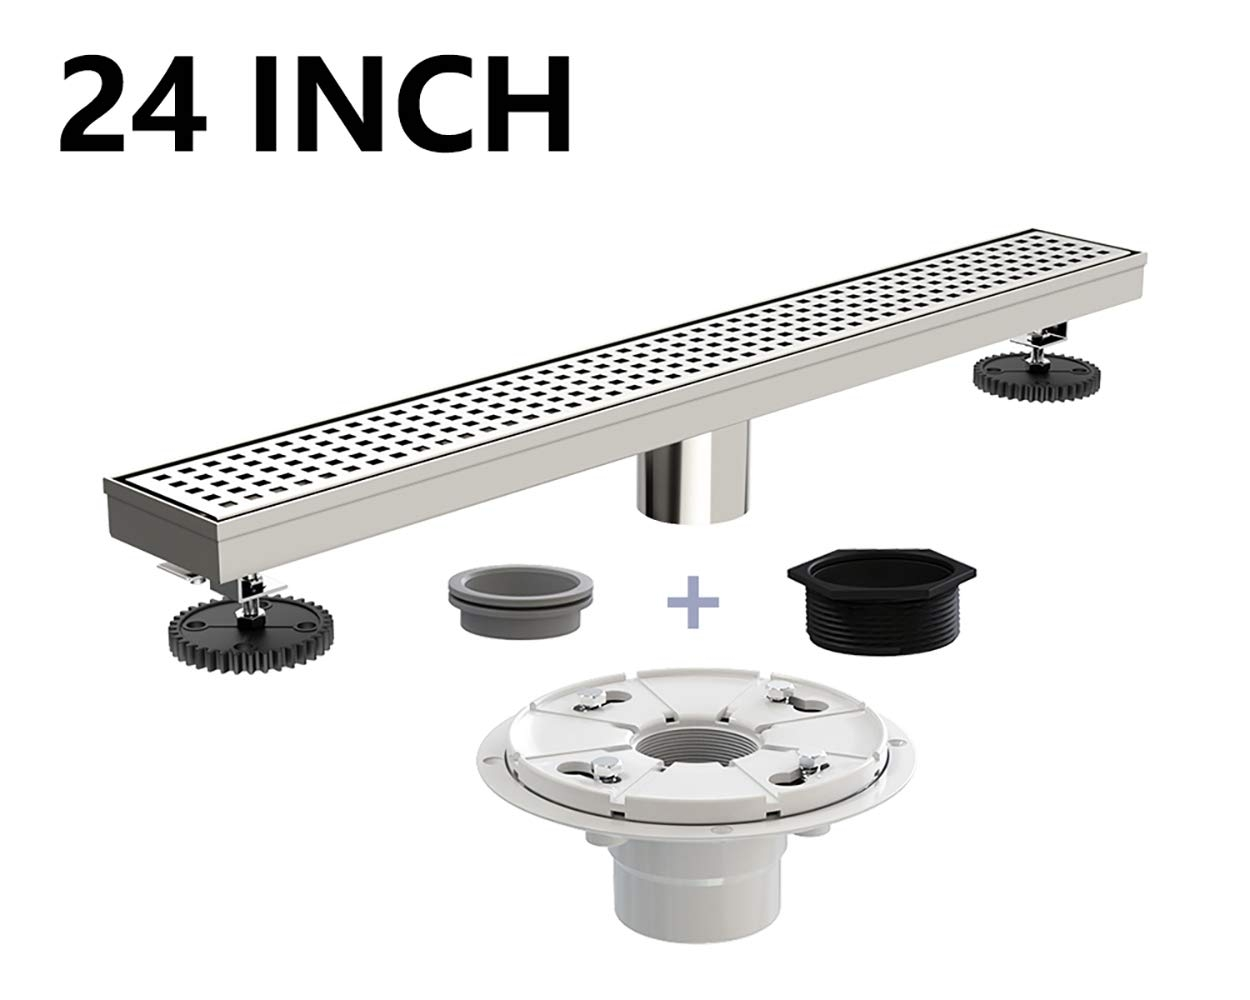 Juno 24 Inch Linear Drain for Shower with Shower Drain Base, Grate Cover Linear Floor Drain